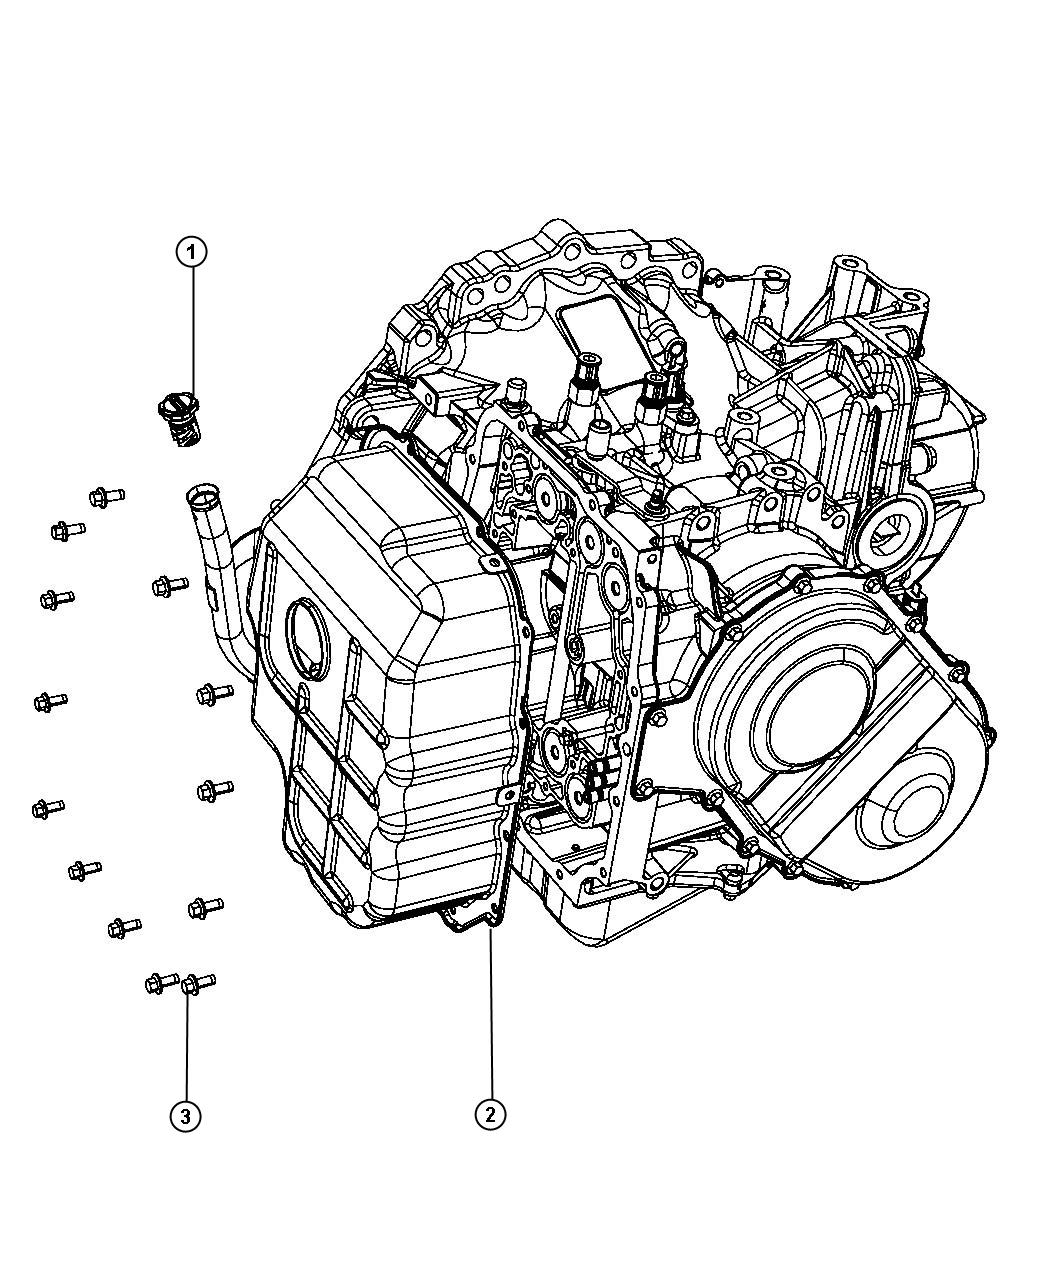 92 Chrysler Lebaron Engine Diagram